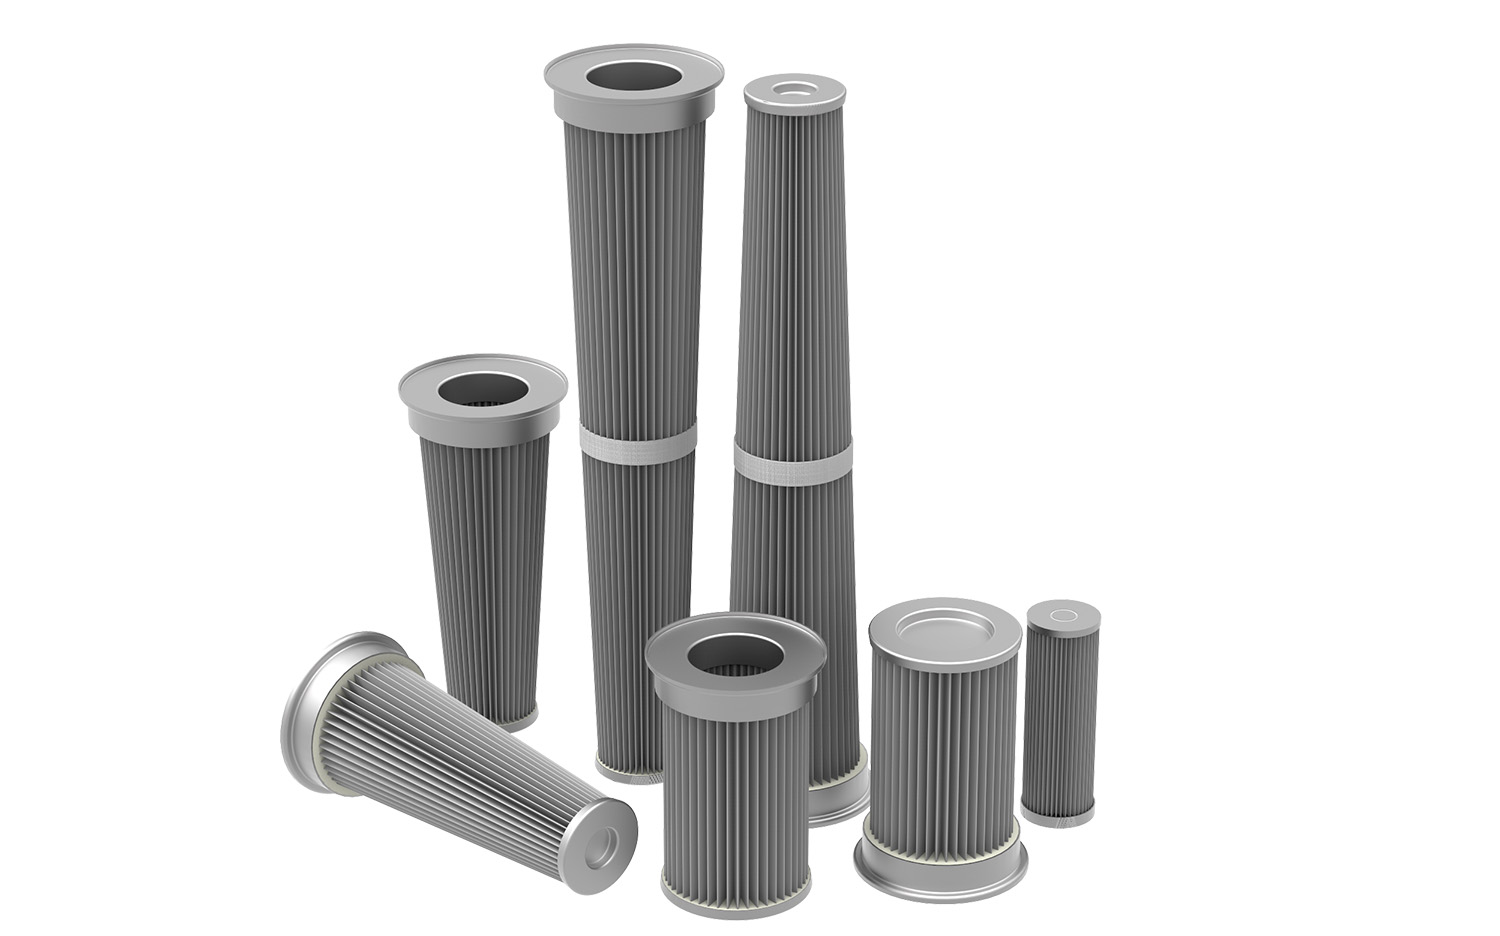 Pleated filters stainless steel